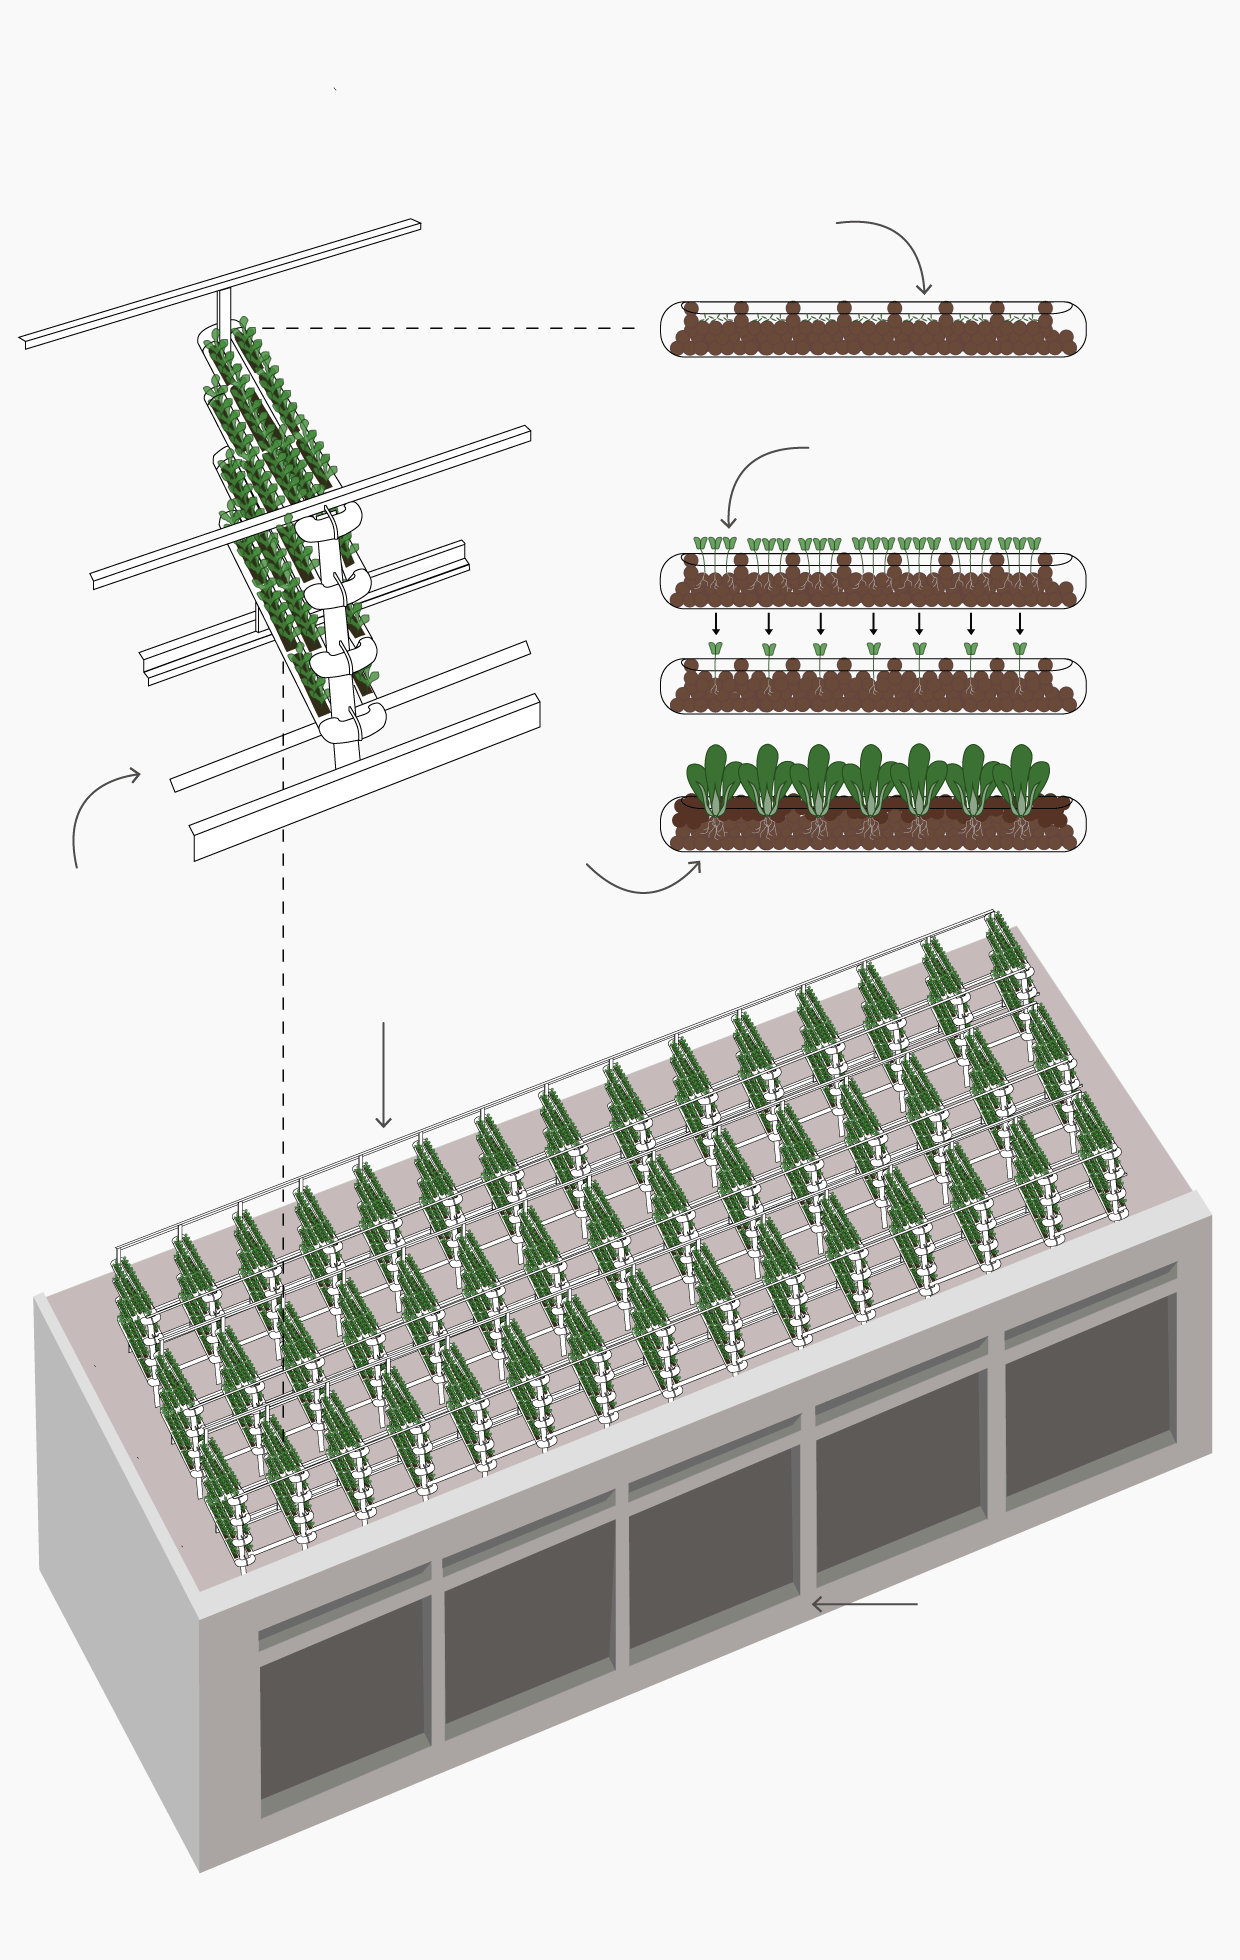 Urban farms using hydroponics on parking structure roofs.